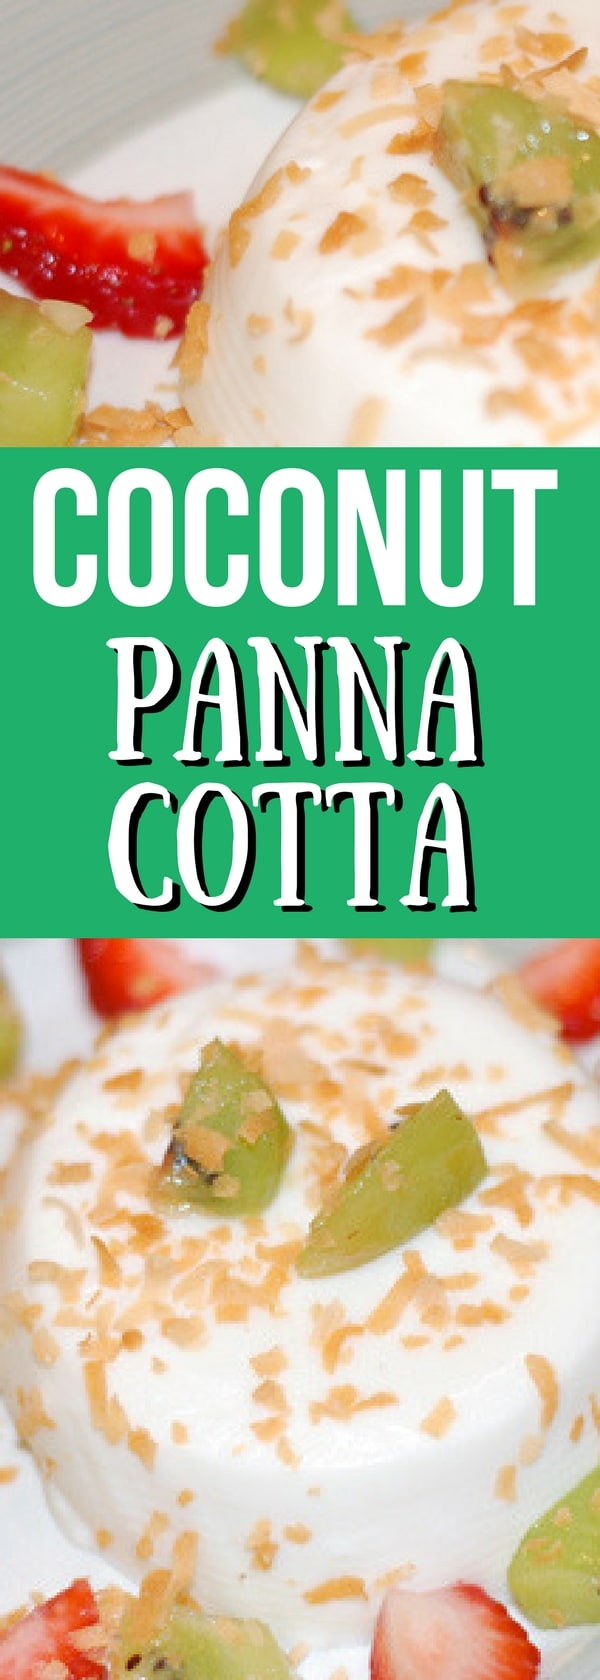 Delicious and easy coconut panna cotta recipe with only 6 ingredients. #pannacotta #dessert #coconut